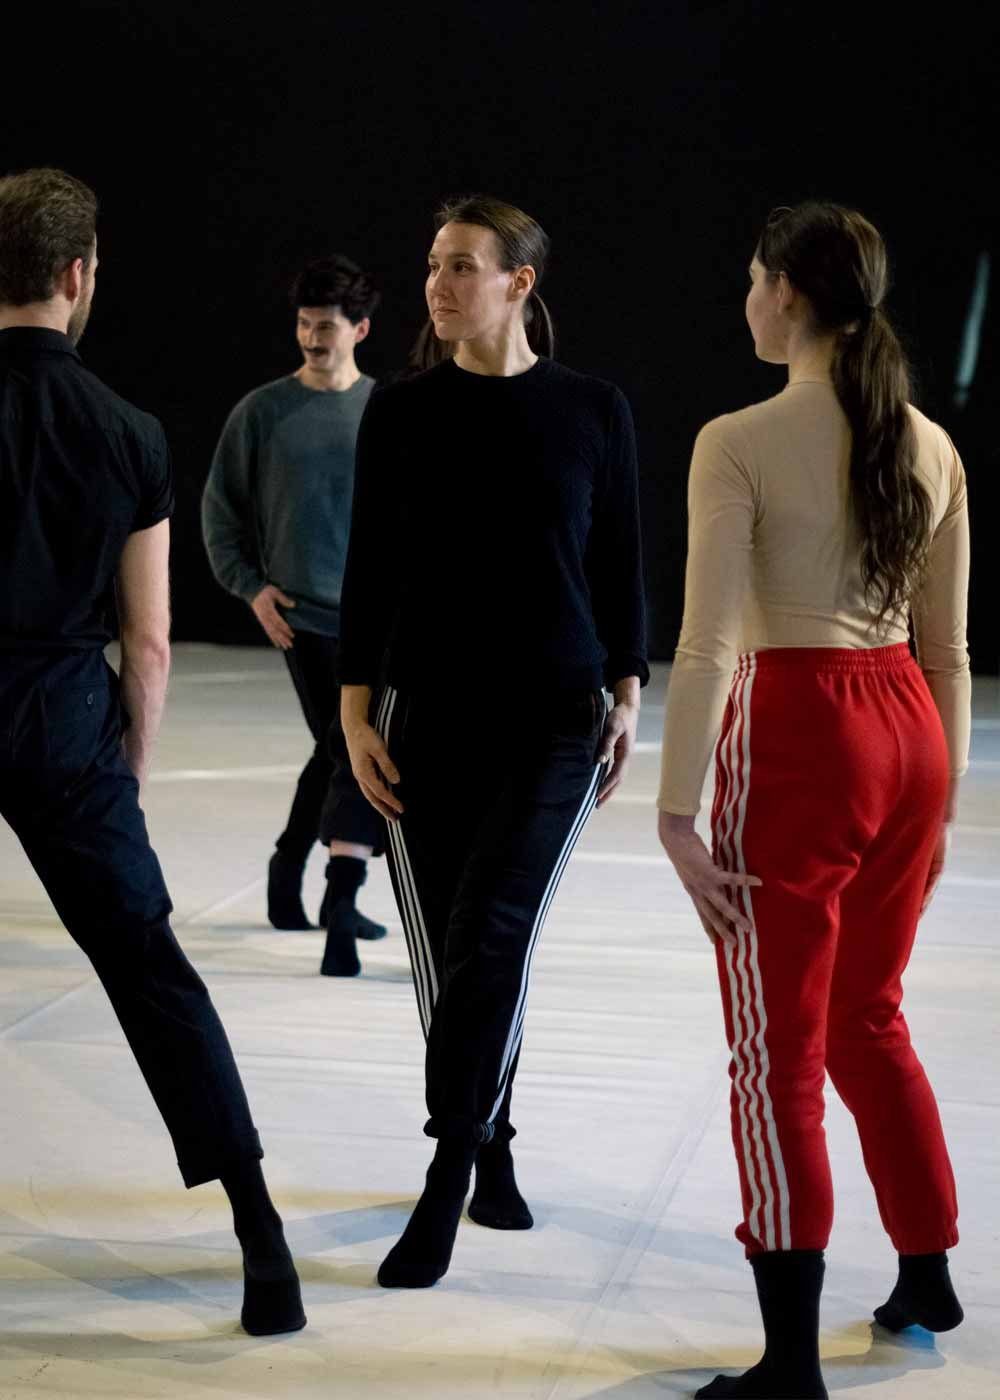 Anna Kempin and other modern dance dancers during a rehearsal of Wilder Shores, choreographed by Michèle Murray